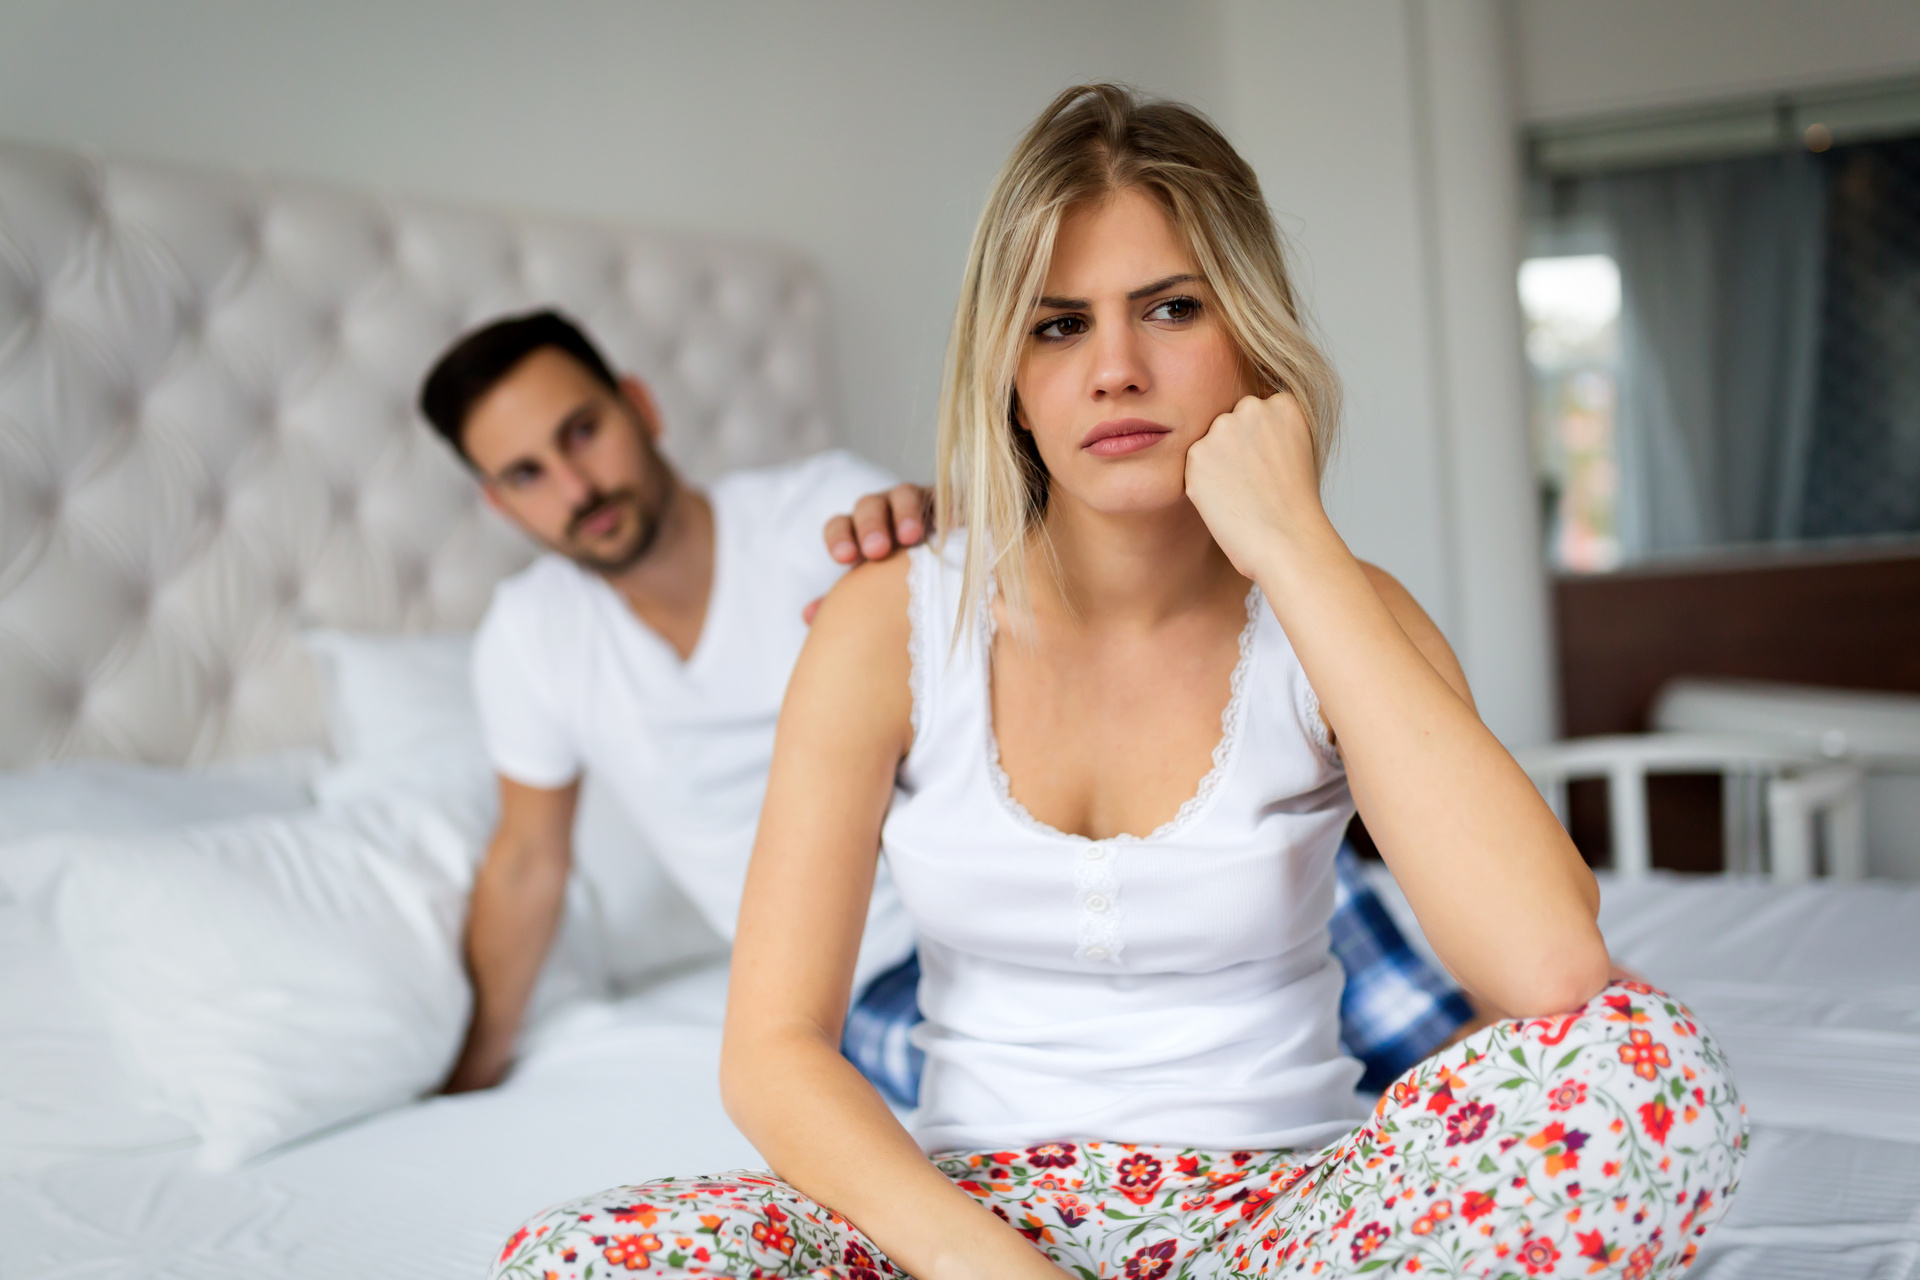 The truth about why women cheat on their husbands